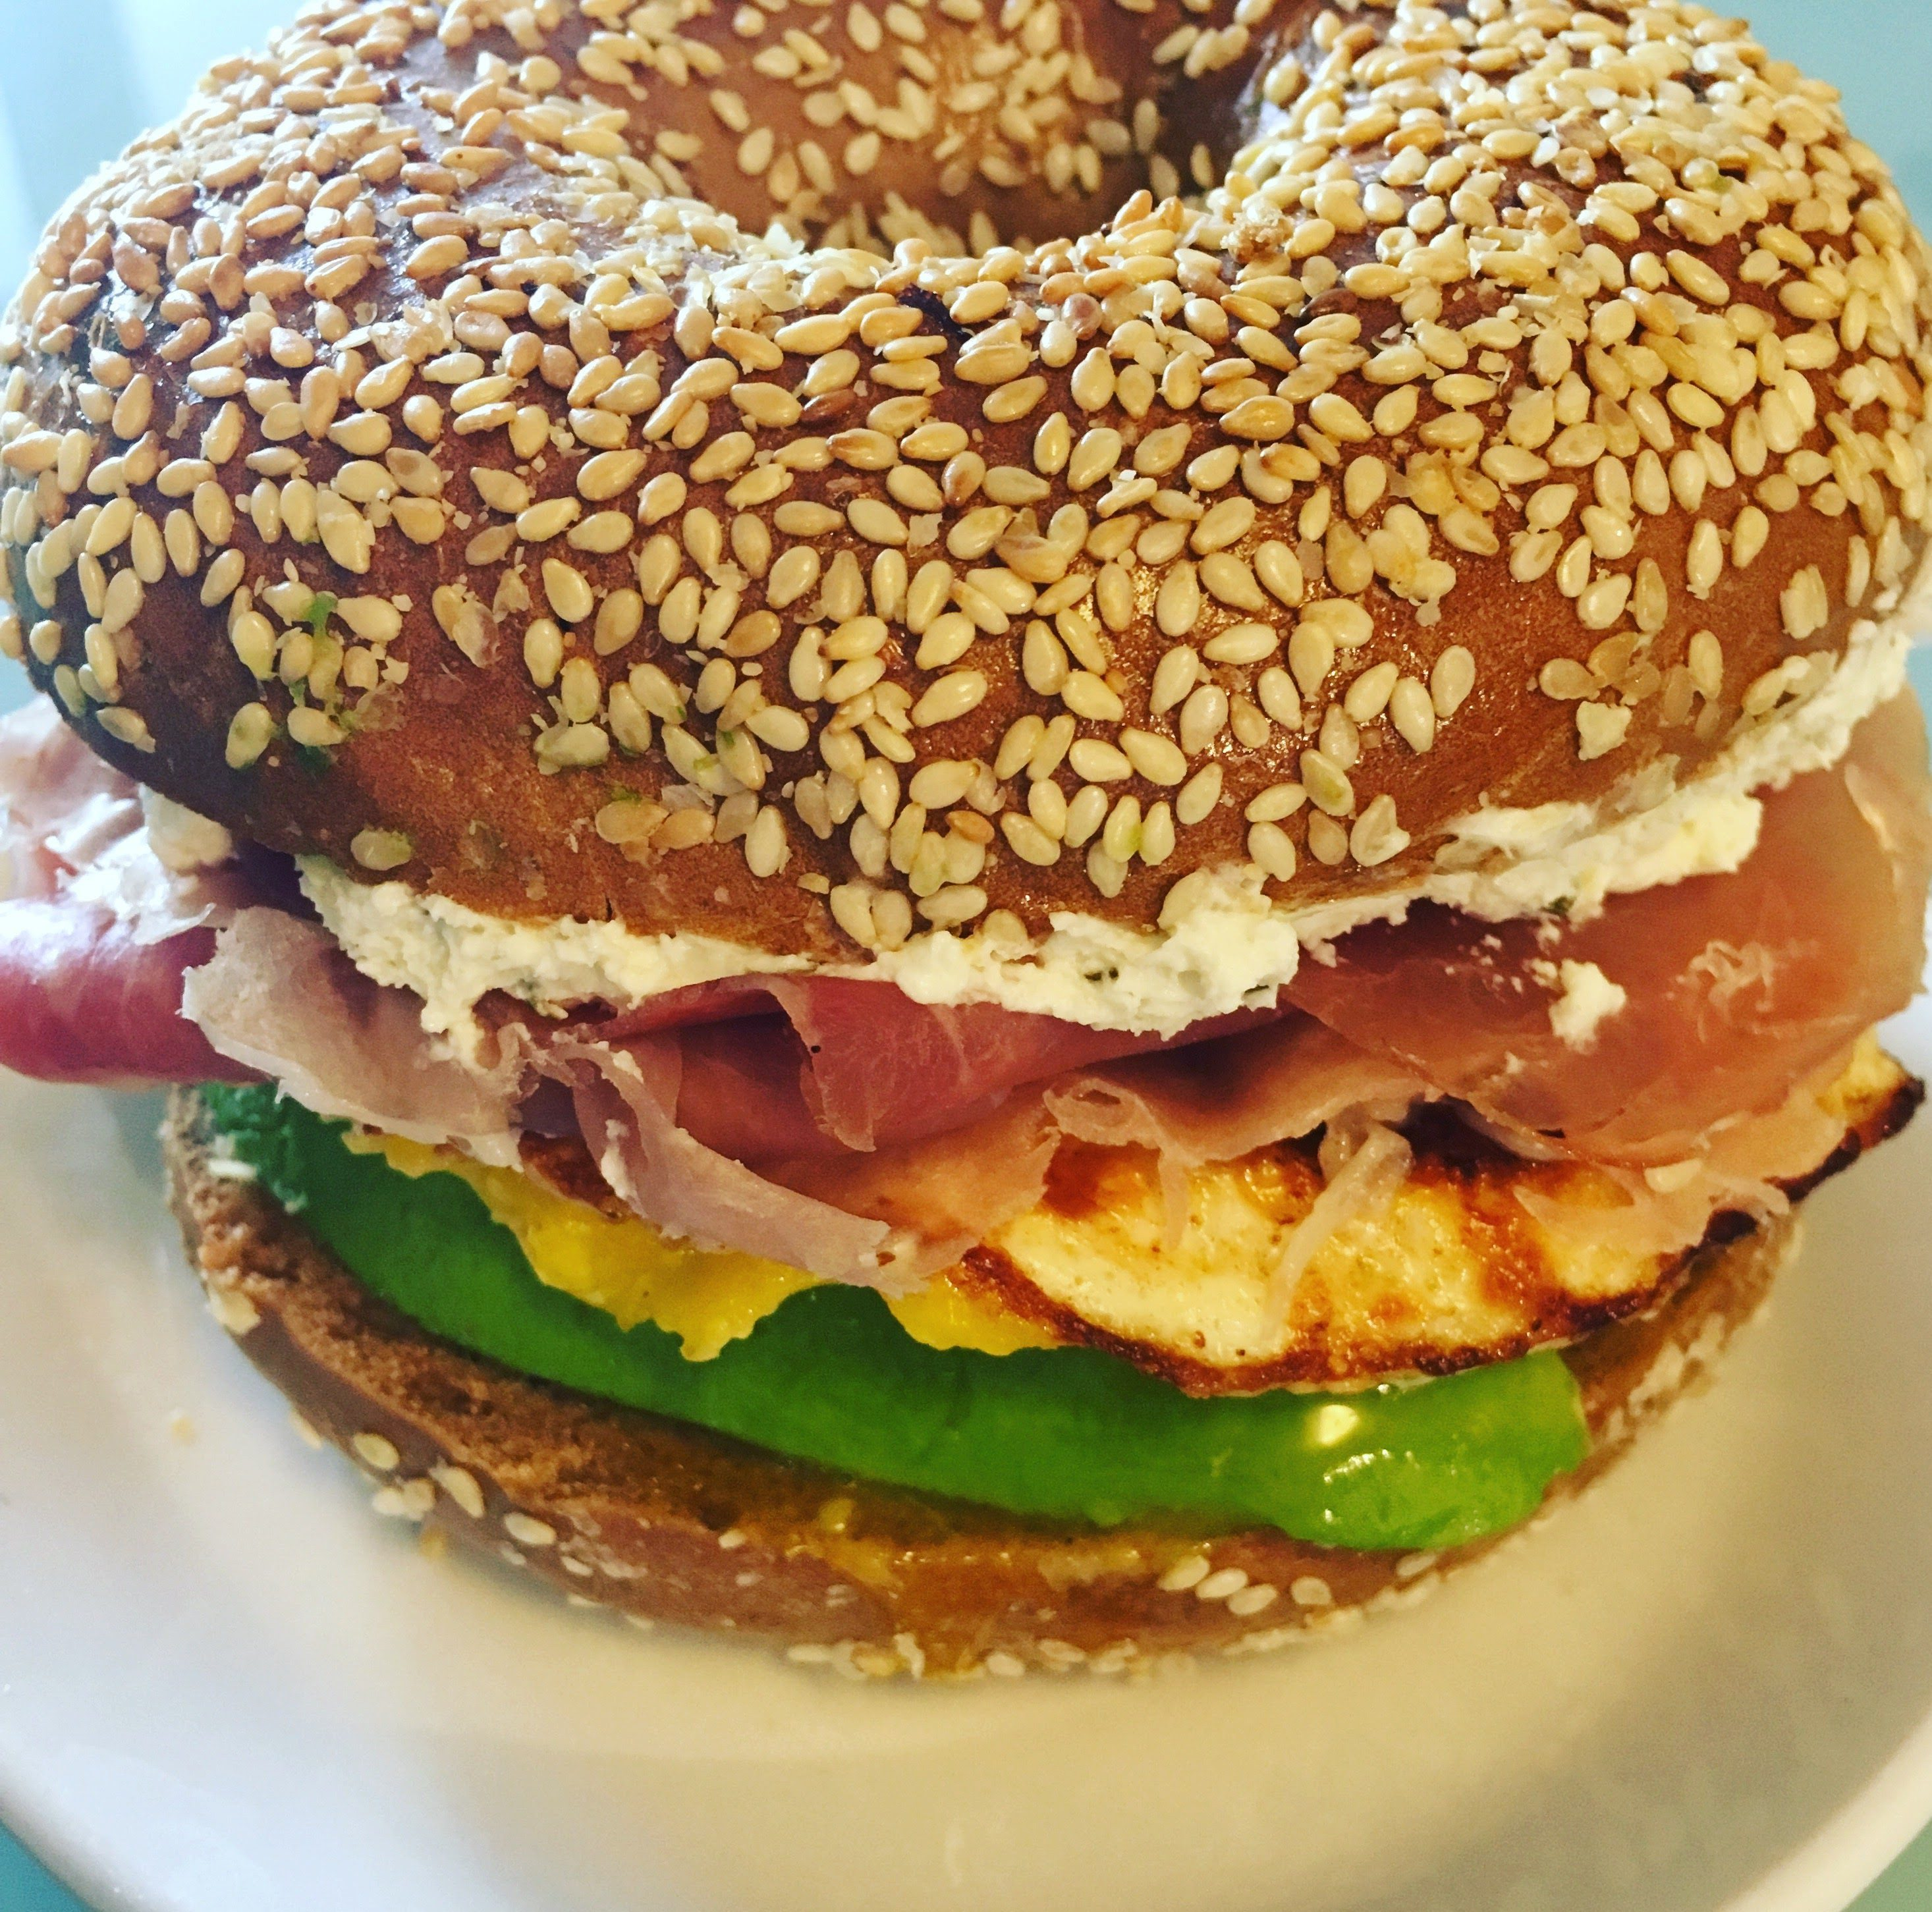 Pumpernickel Sesame Seed Bagel with Prosciutto, Fried Egg, Avocado and Whipped Cream Cheese and Chives